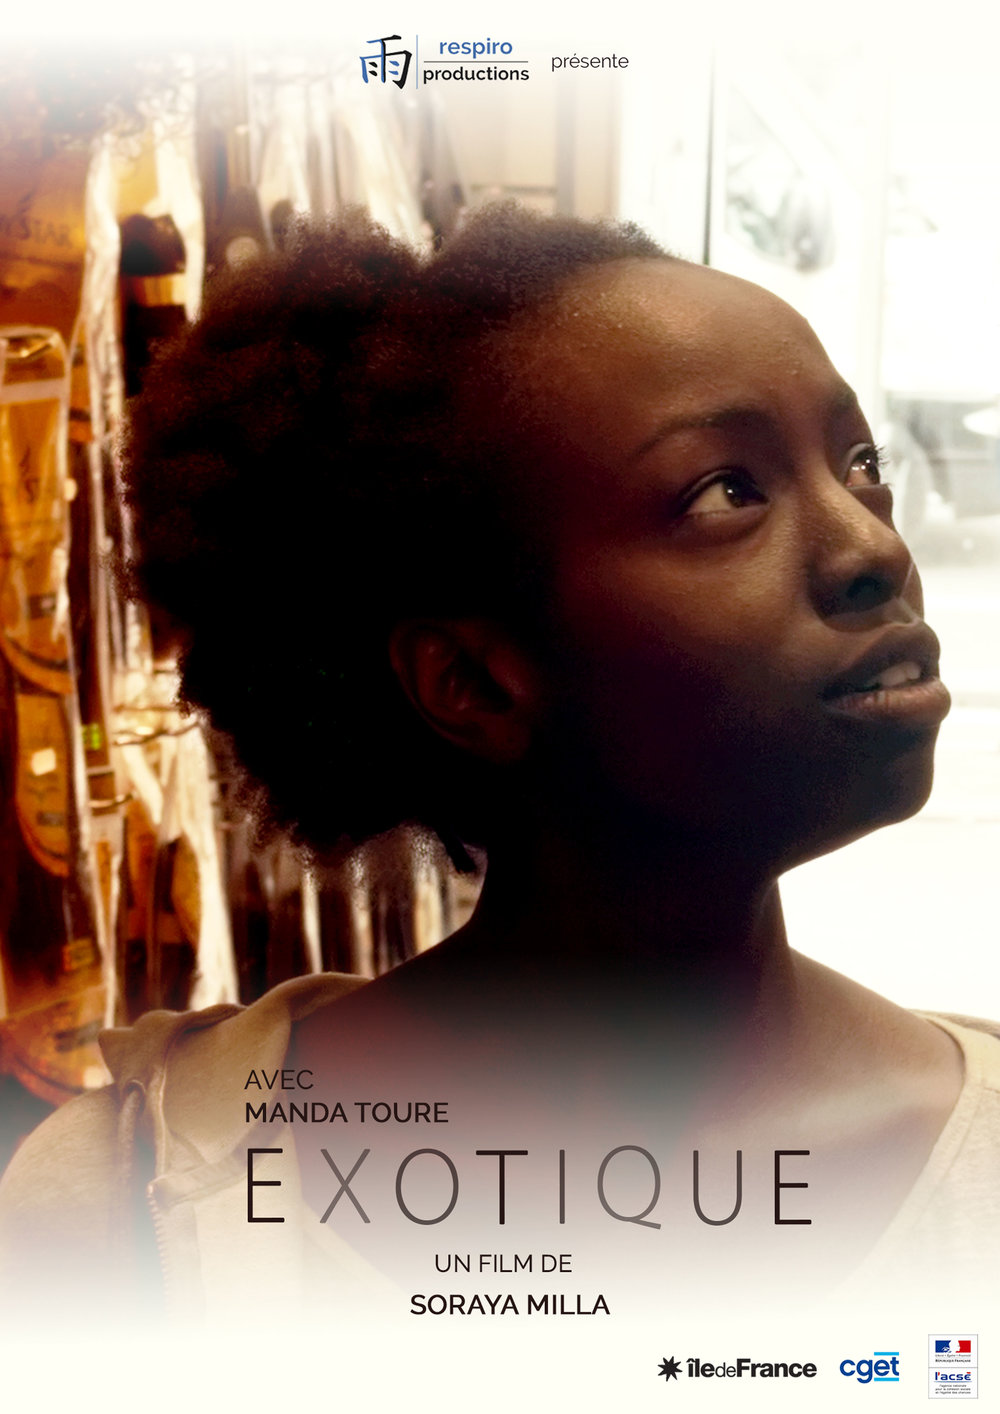 - EXOTIQUE, 2015 (France) Philomène, a Parisian teenager of African origin, loves Bastien, a guy in her class. But with her frizzy hair, she doesn't feel she has the weapons of seduction to challenge all those girls with sleek hair. So she gets a weave. Philomène lives this 'capillary change' as a metamorphosis.With a dexterous touch, 'Exotic' explores issues of integration, standards of beauty, othering, and micro-aggressions in a sweet rather than an in-your-face way, making it a tragi-comic delight. Director: Soraya Milla Length:  18 minWhere and when: Deptford Cinema, Saturday 2 December, 16:00 - screened alongside Toprak and El Futuro PerfectoPrice and tickets: £4.50-6, buy a ticket here